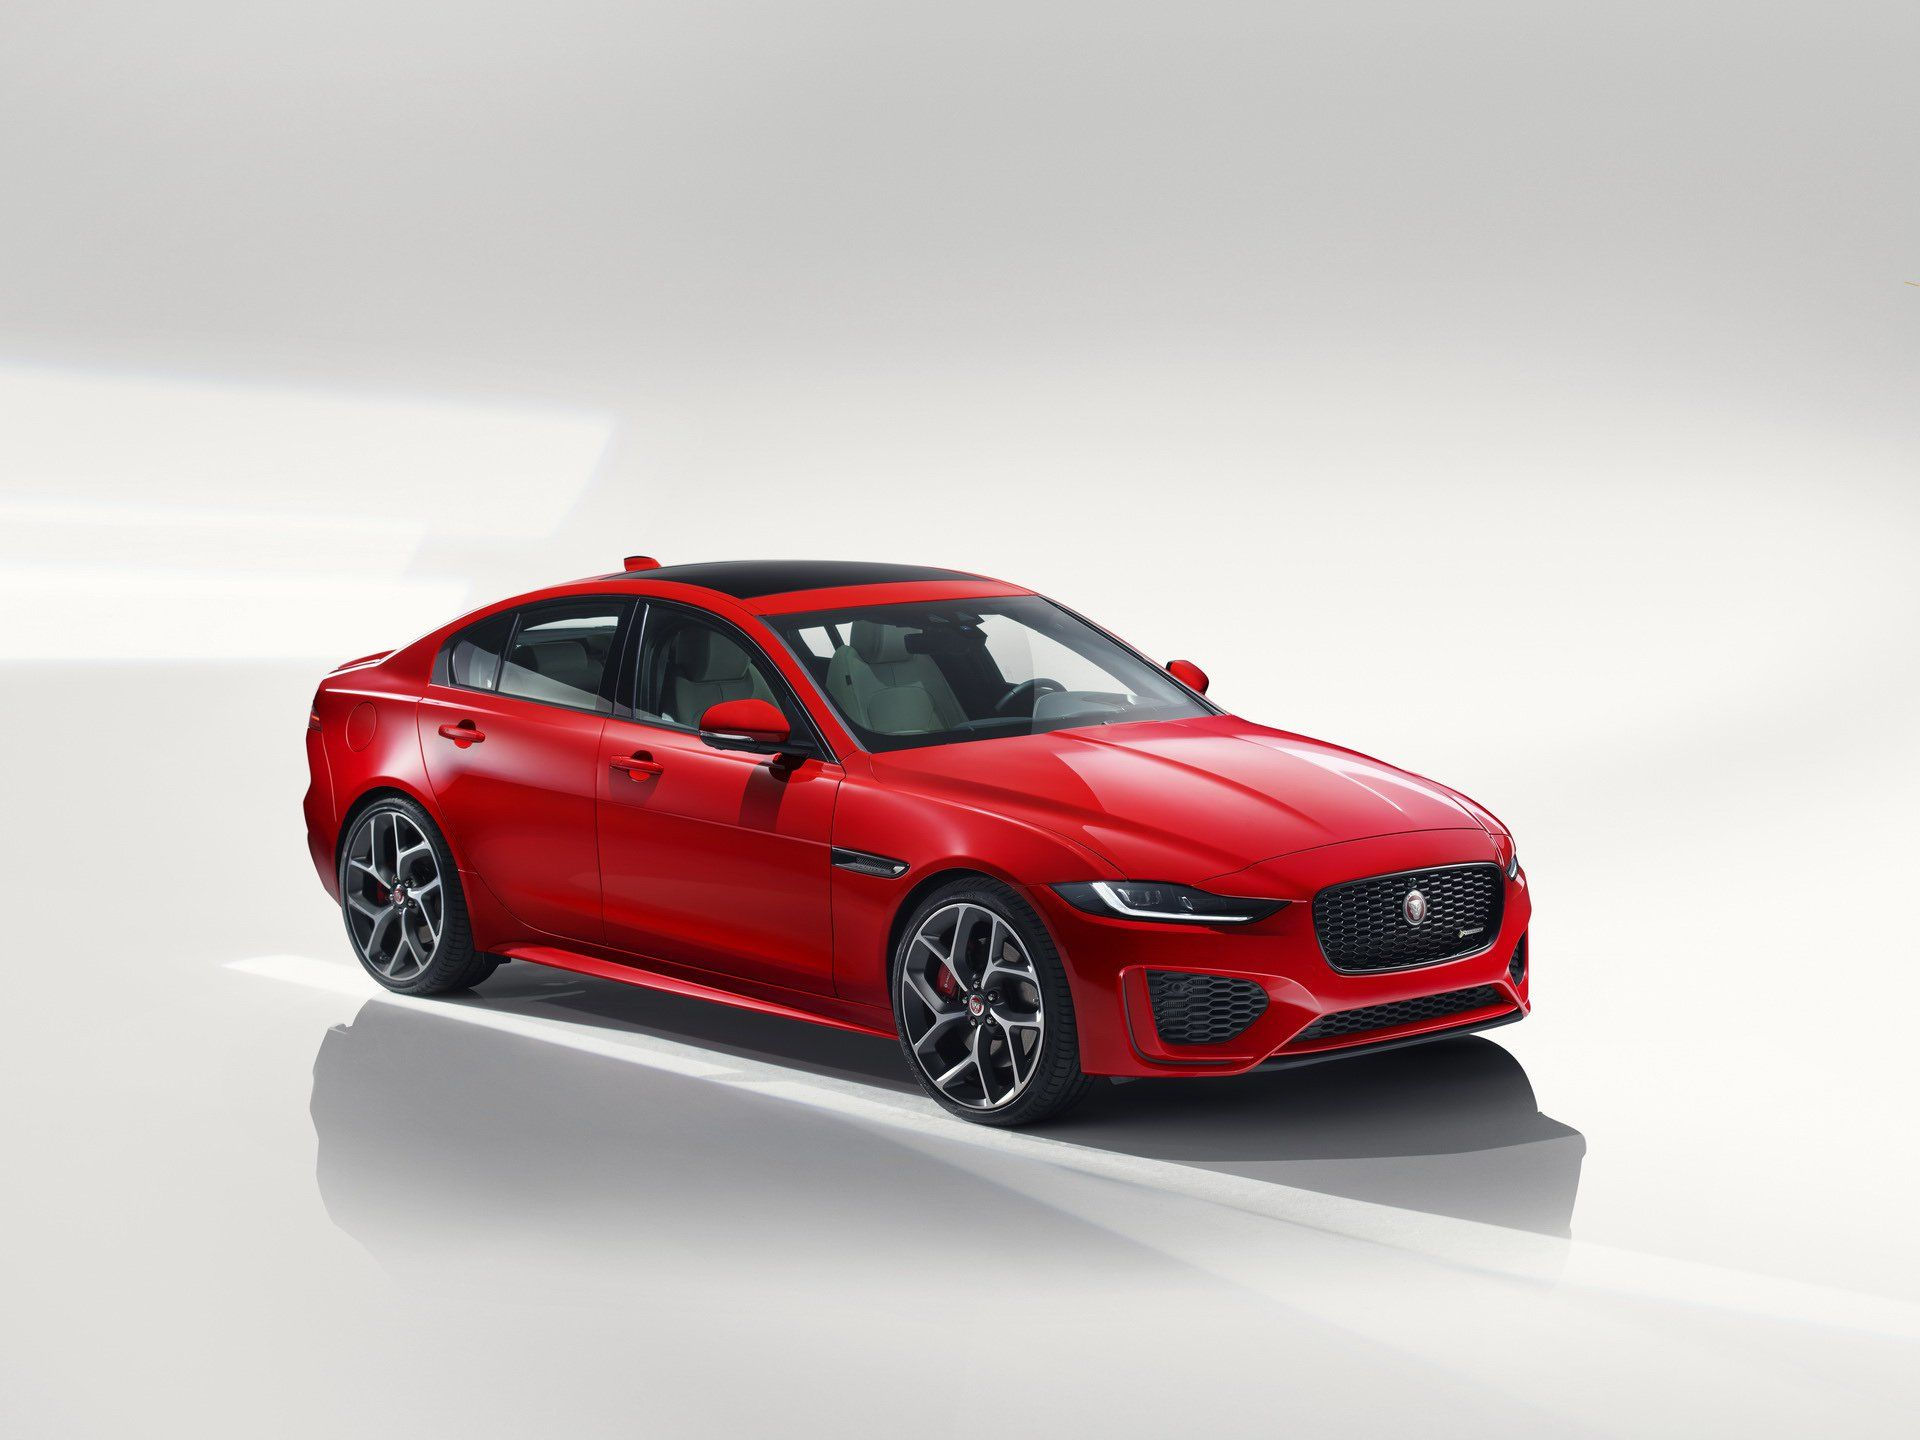 Jaguar Xe S Awd 2020 Price In Dubai Uae Features And Specs Ccarprice Uae